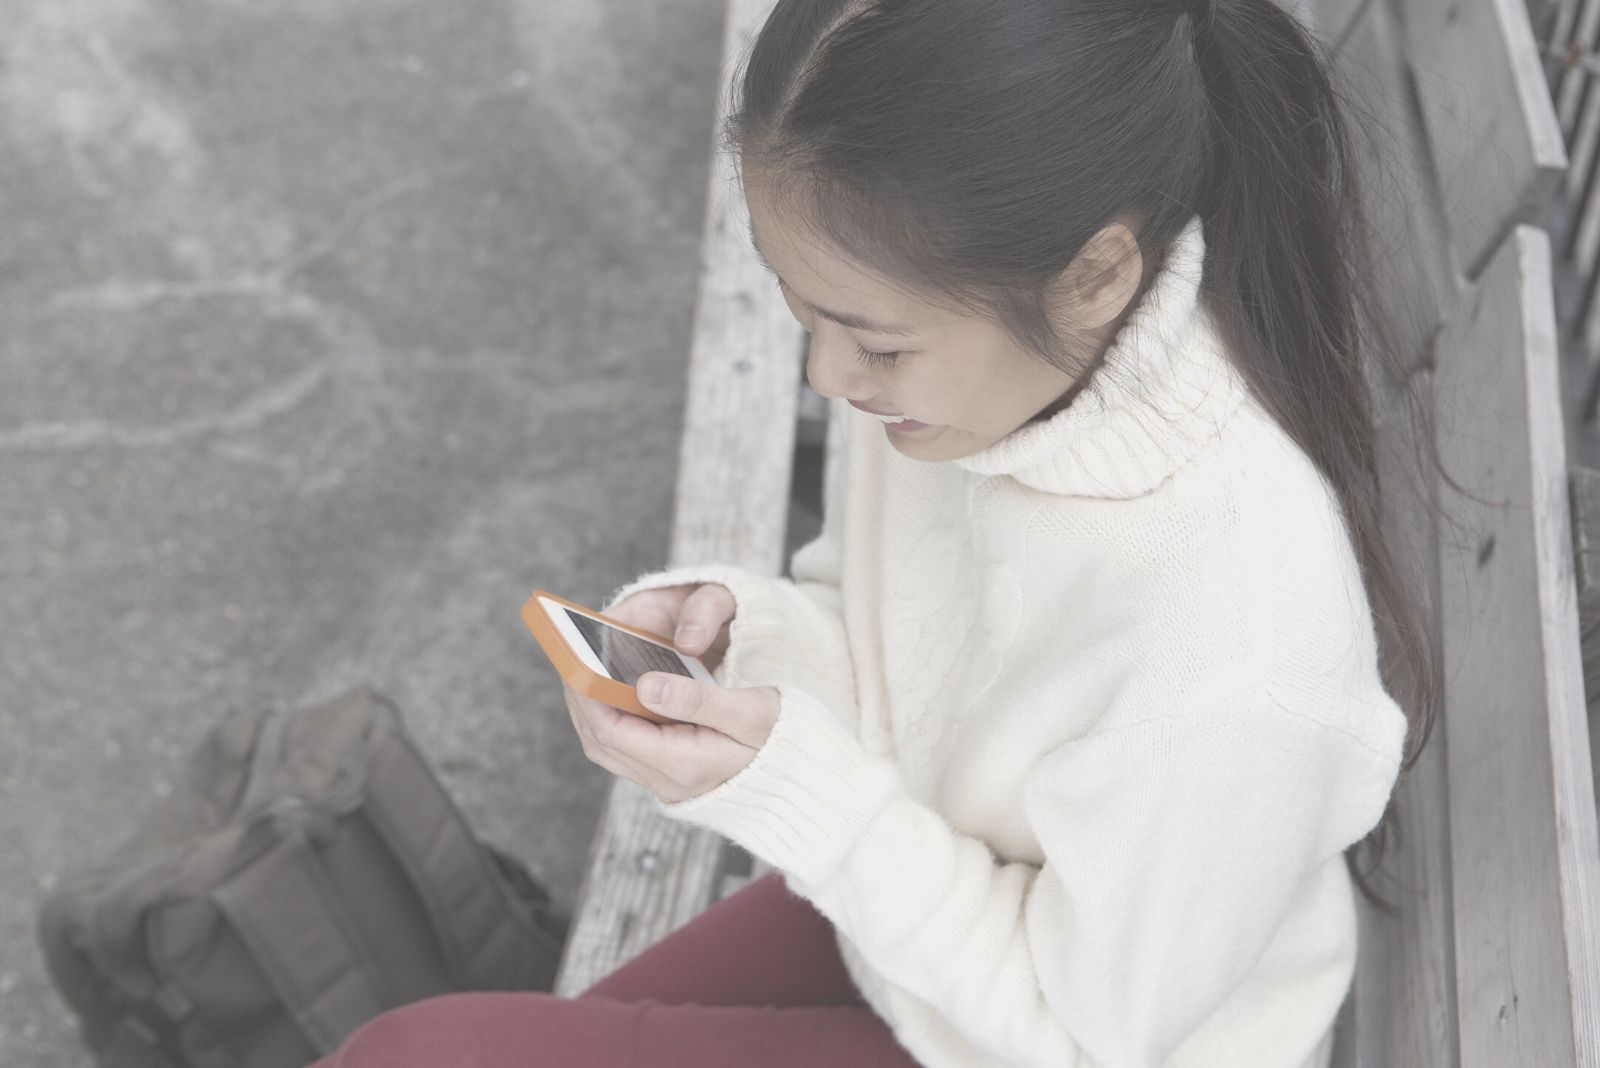 top angle of a woman smiling while texting and sitting outdoors